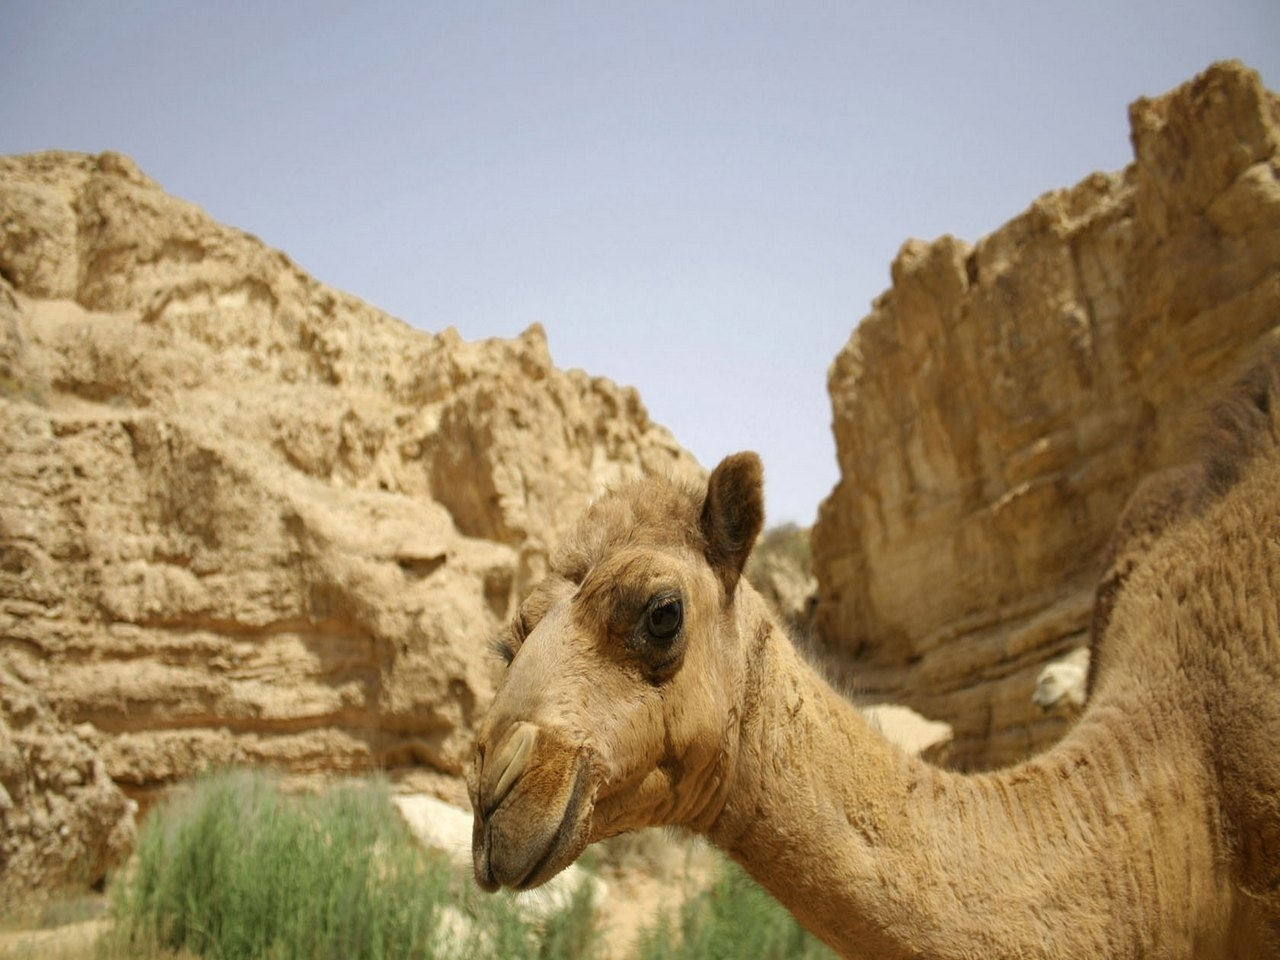 25006 download wallpaper Animals, Mountains, Camels screensavers and pictures for free